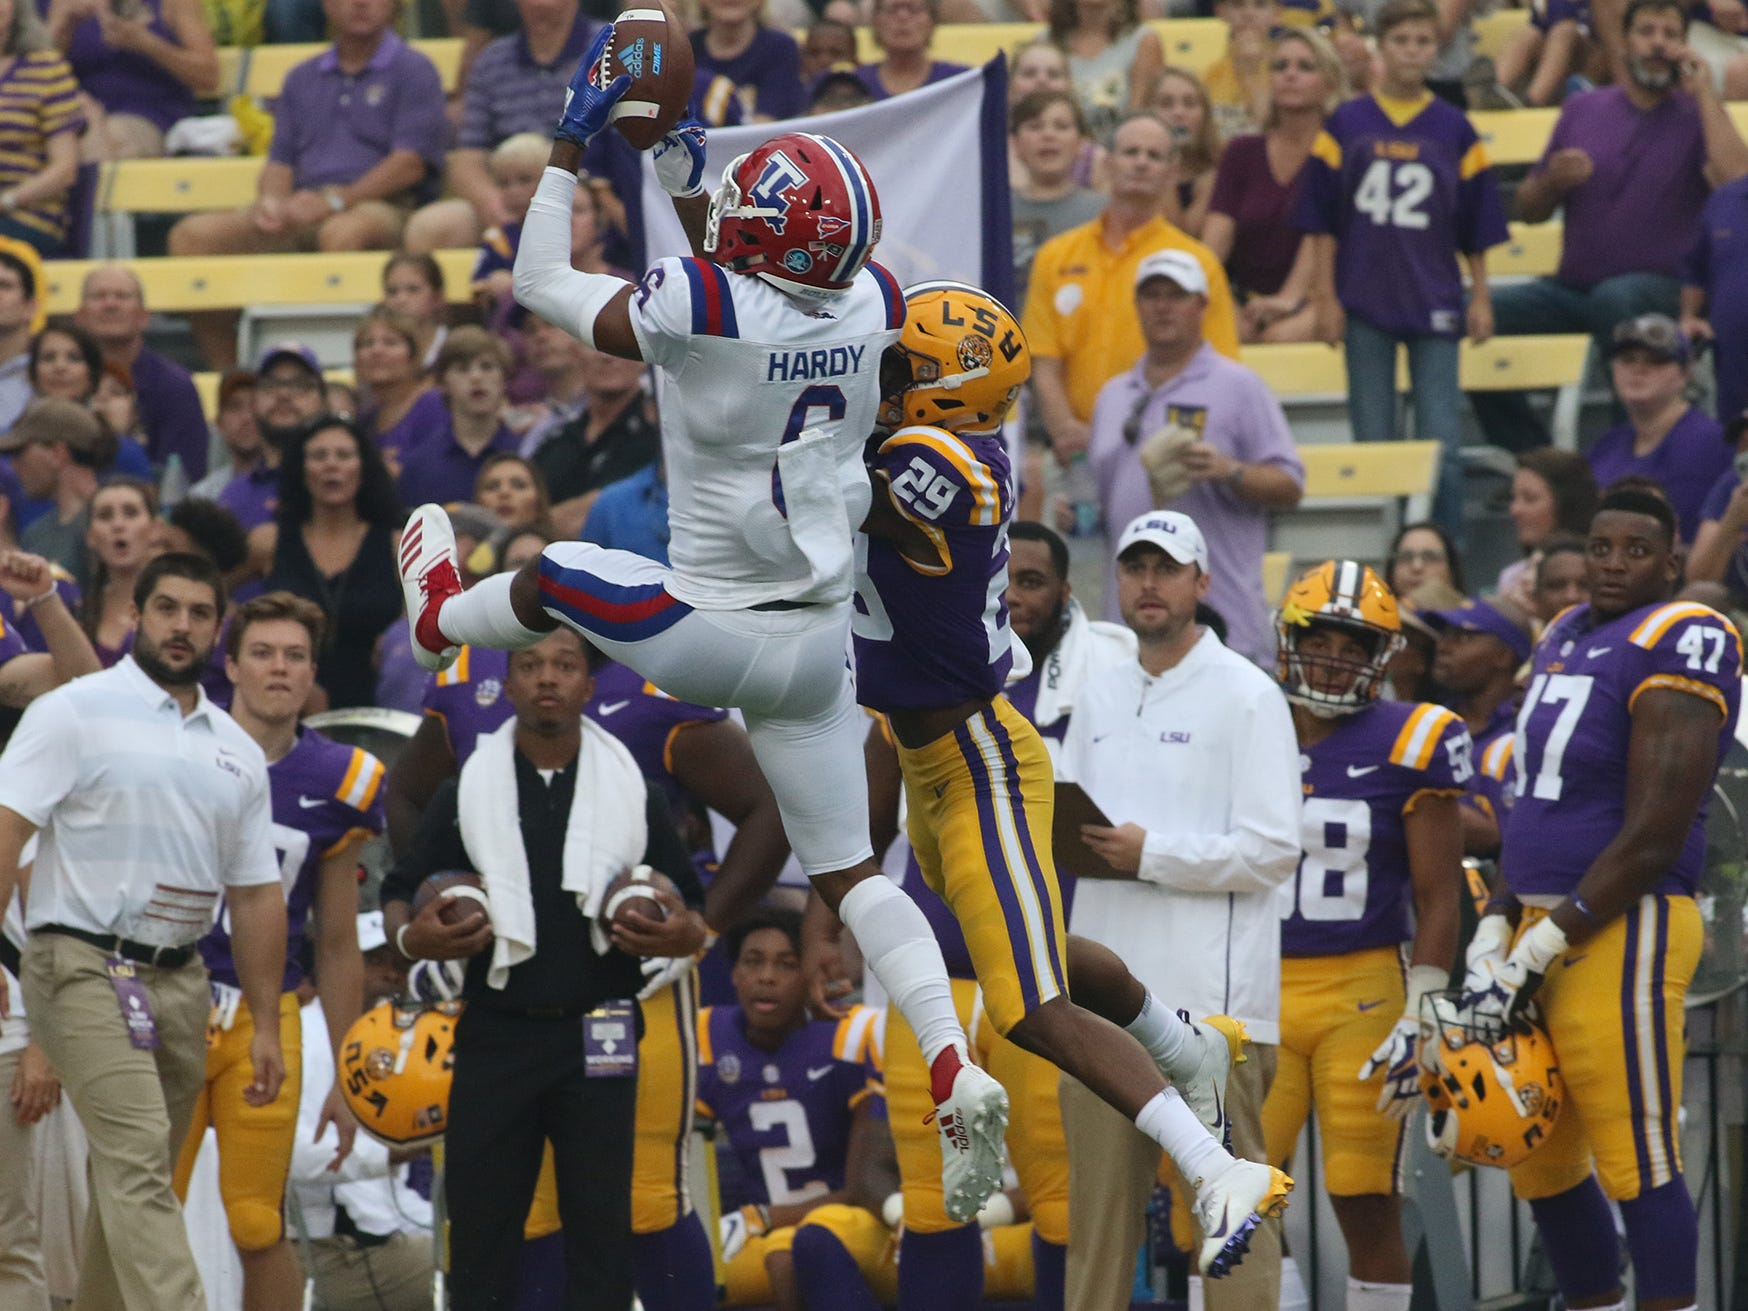 Louisiana Tech redshirt sophomore receiver Adrian Hardy (6) battles LSU cornerback Greedy Williams (29) for a pass during a game at Tiger Stadium Sept. 22, 2018.